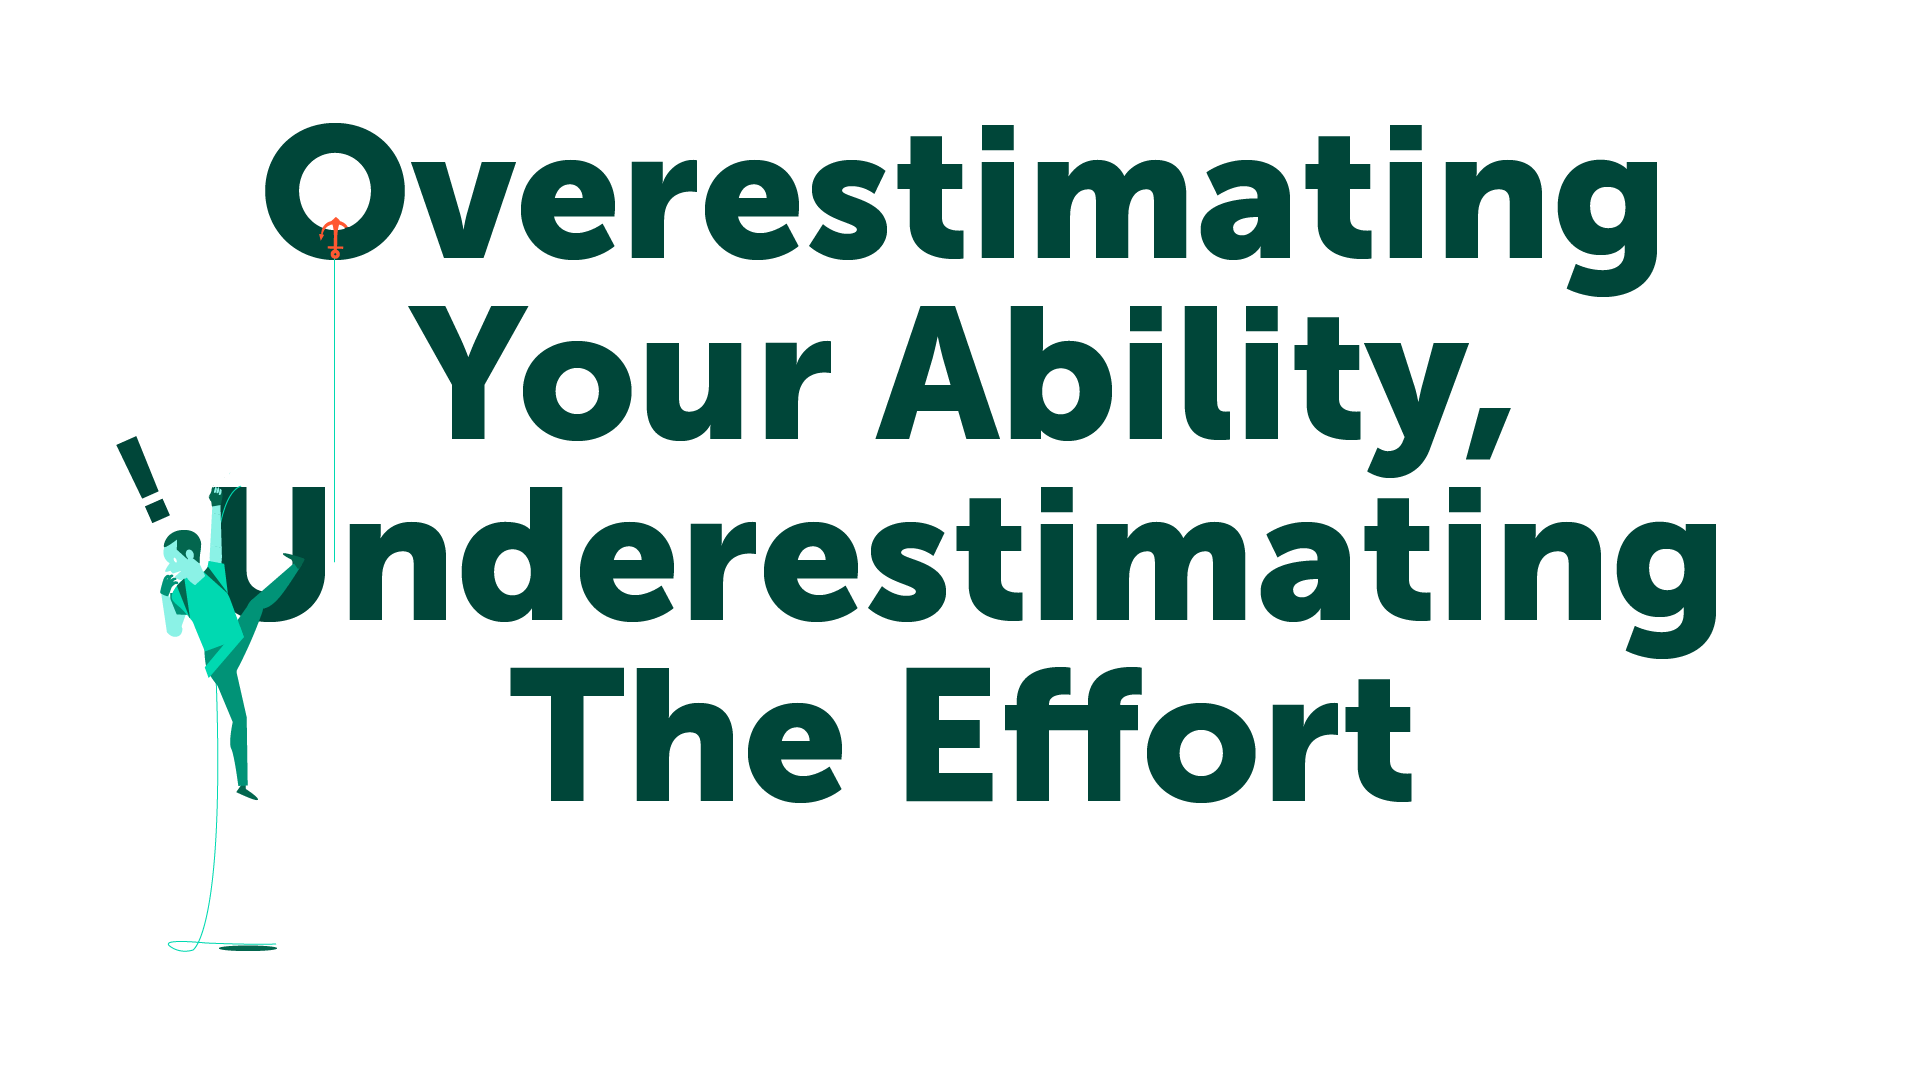 Overestimating Your Ability, Underestimating the effort